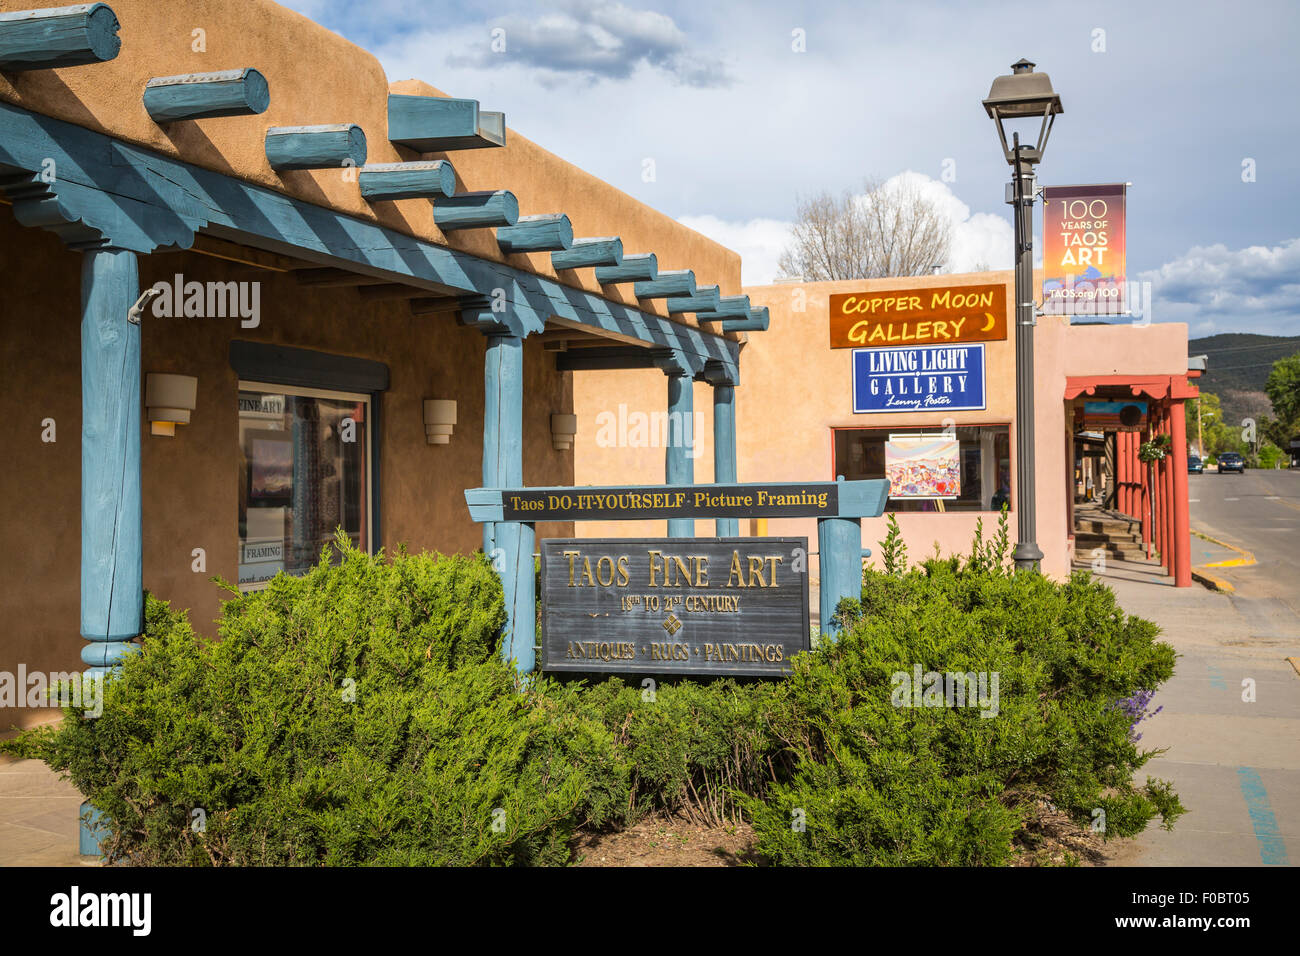 Shops and stores in taos new mexico usa stock photo 86312133 alamy shops and stores in taos new mexico usa solutioingenieria Images